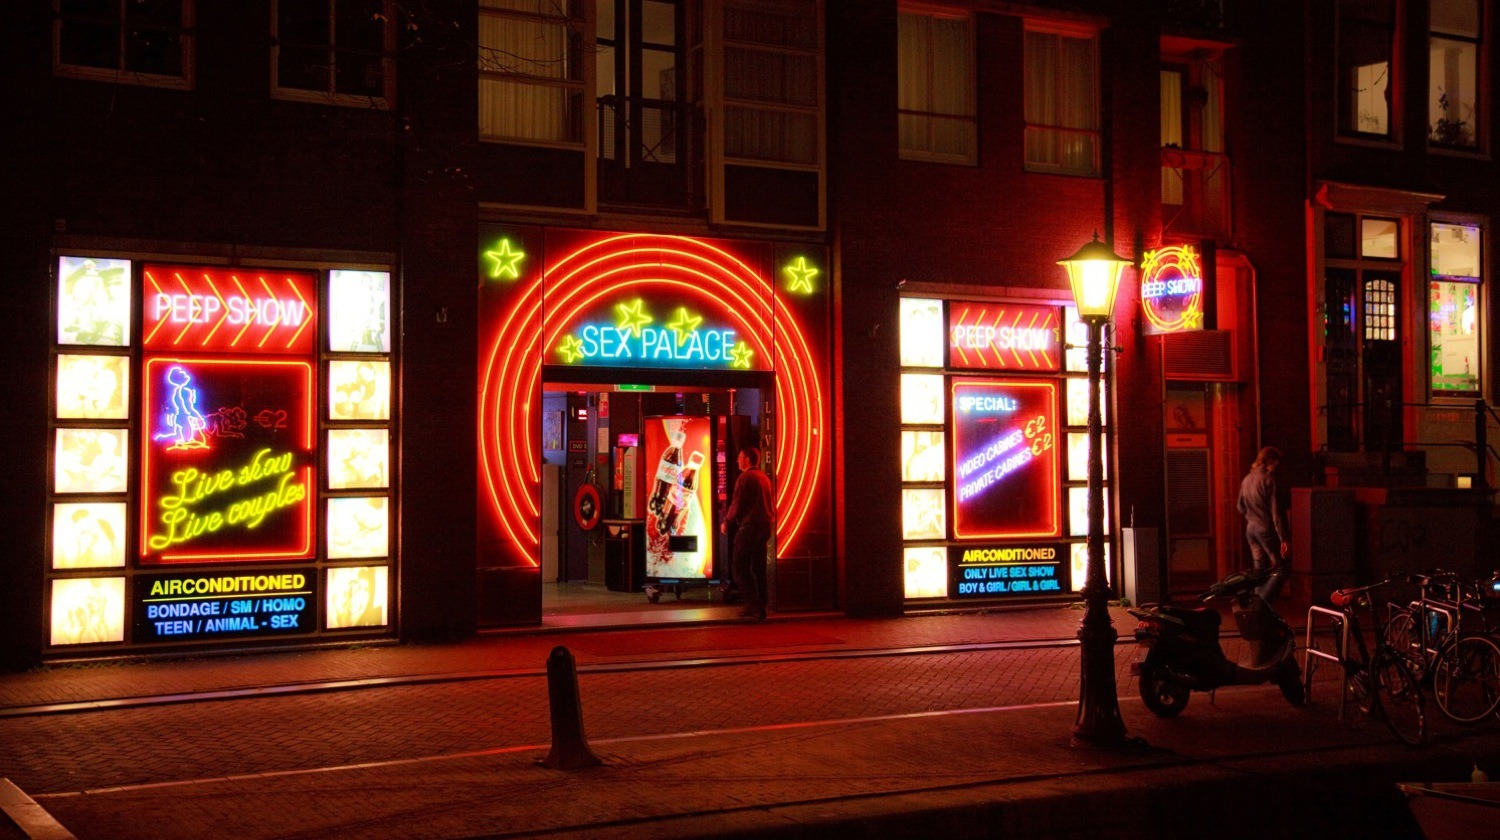 A guide to Amsterdam's Red Light District